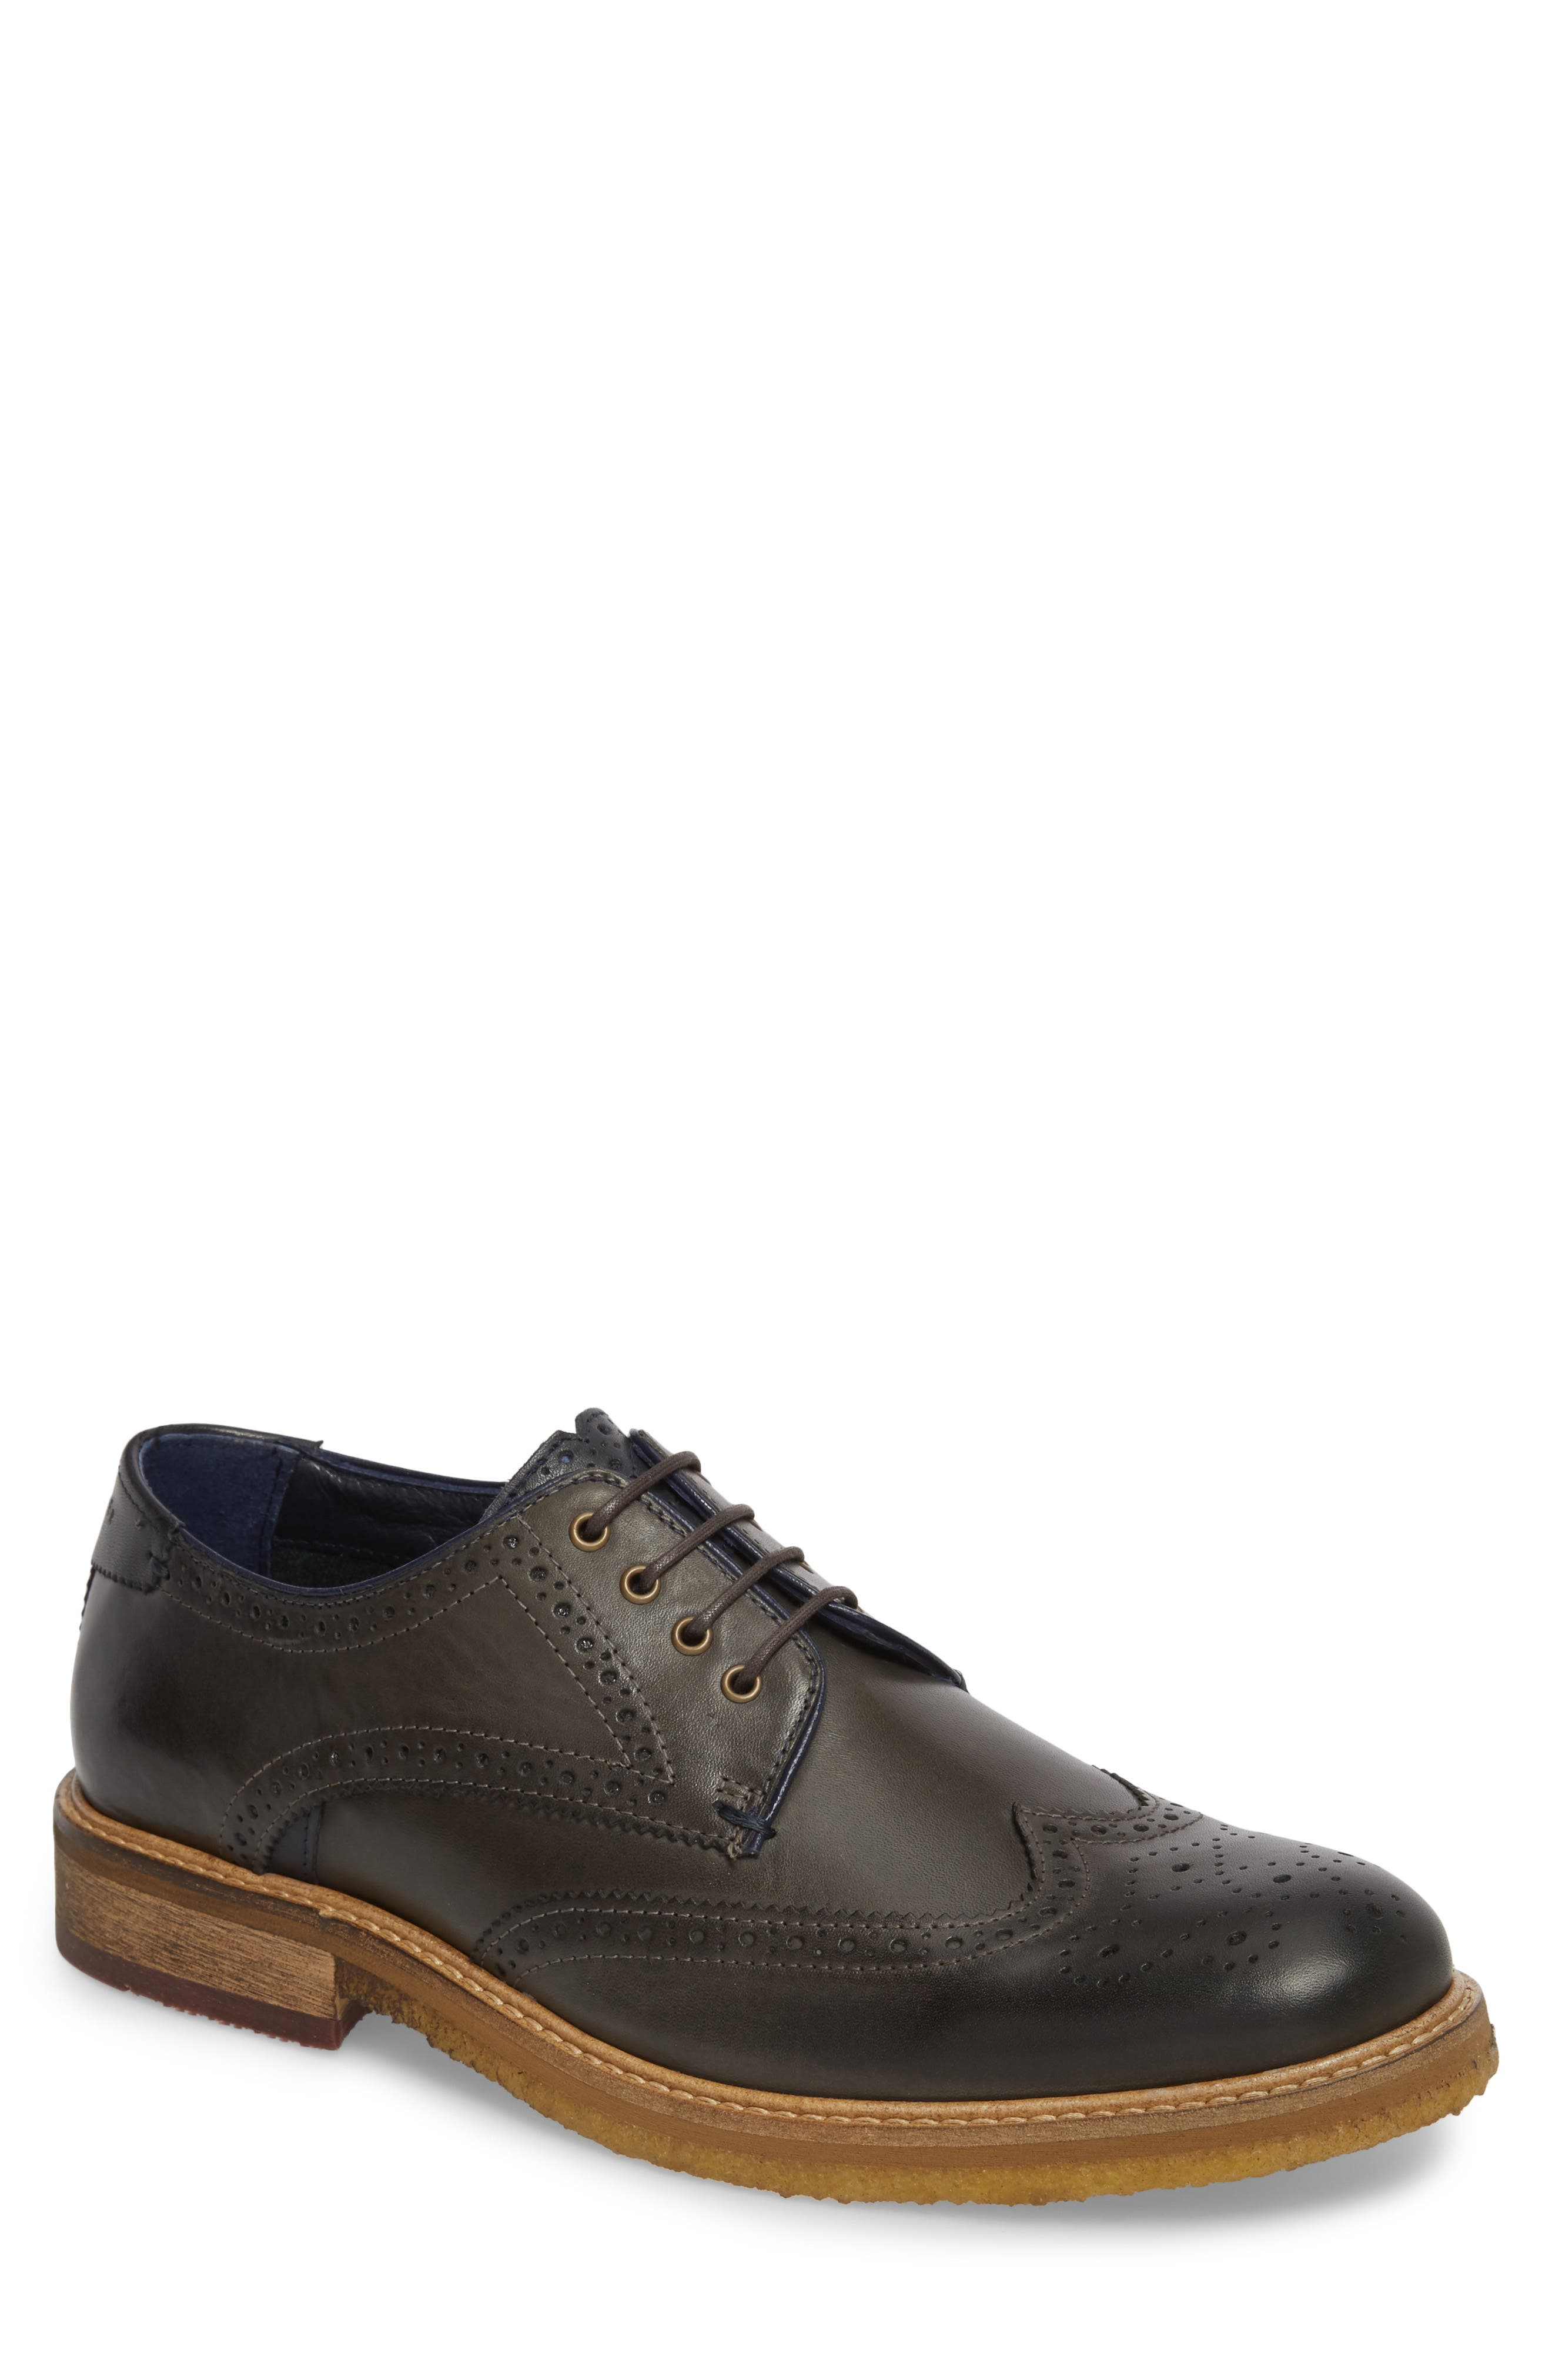 TED BAKER LONDON Prycce Wingtip Derby, Main, color, 031